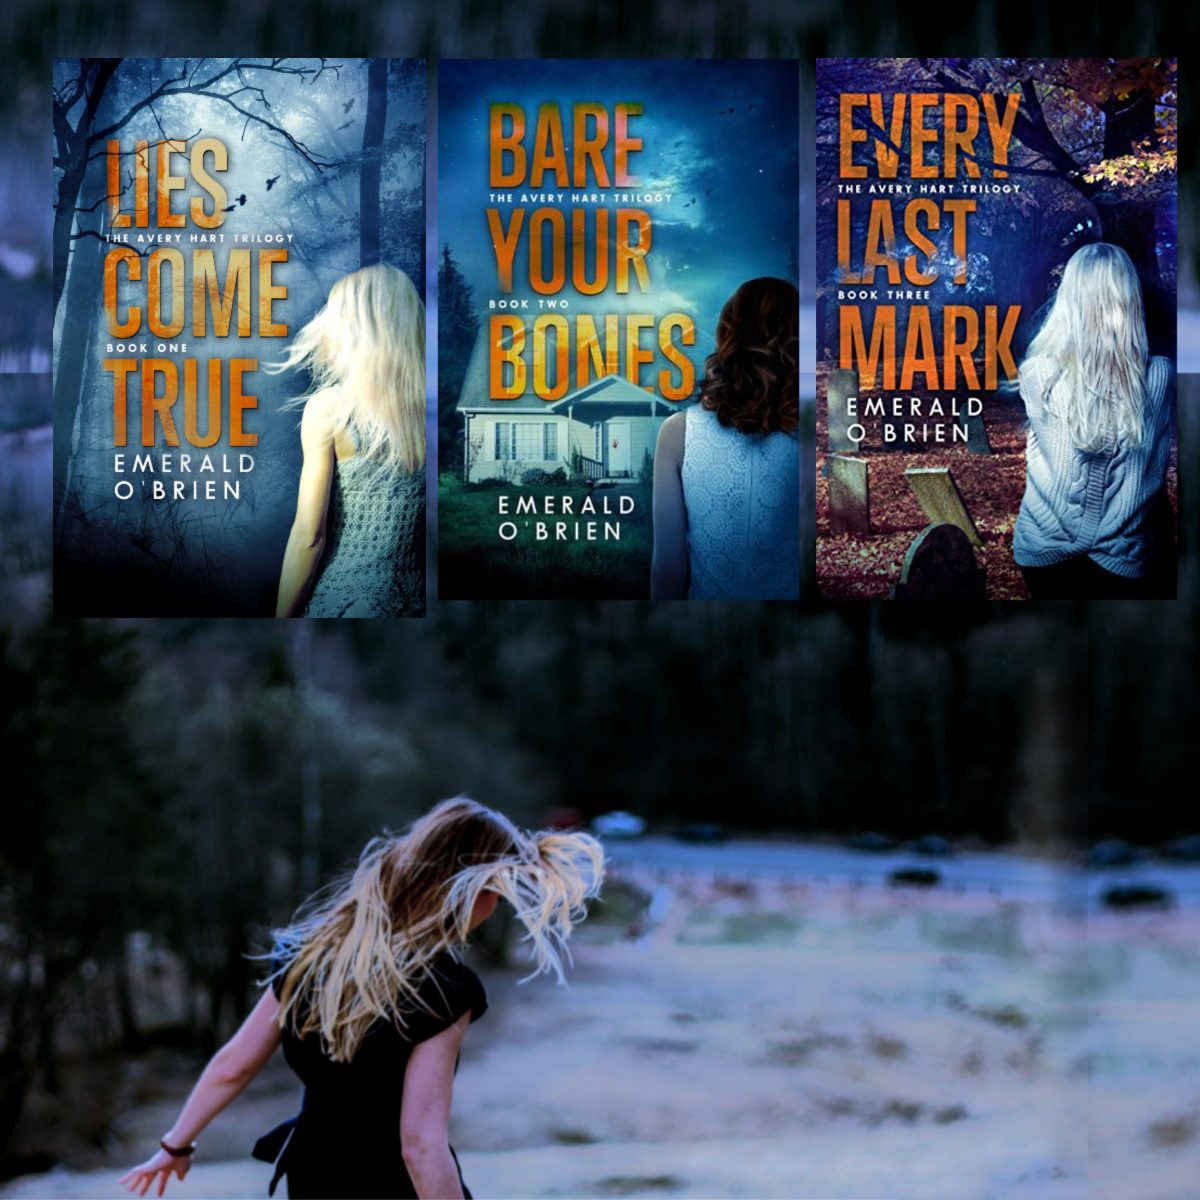 The Avery Hart Trilogy